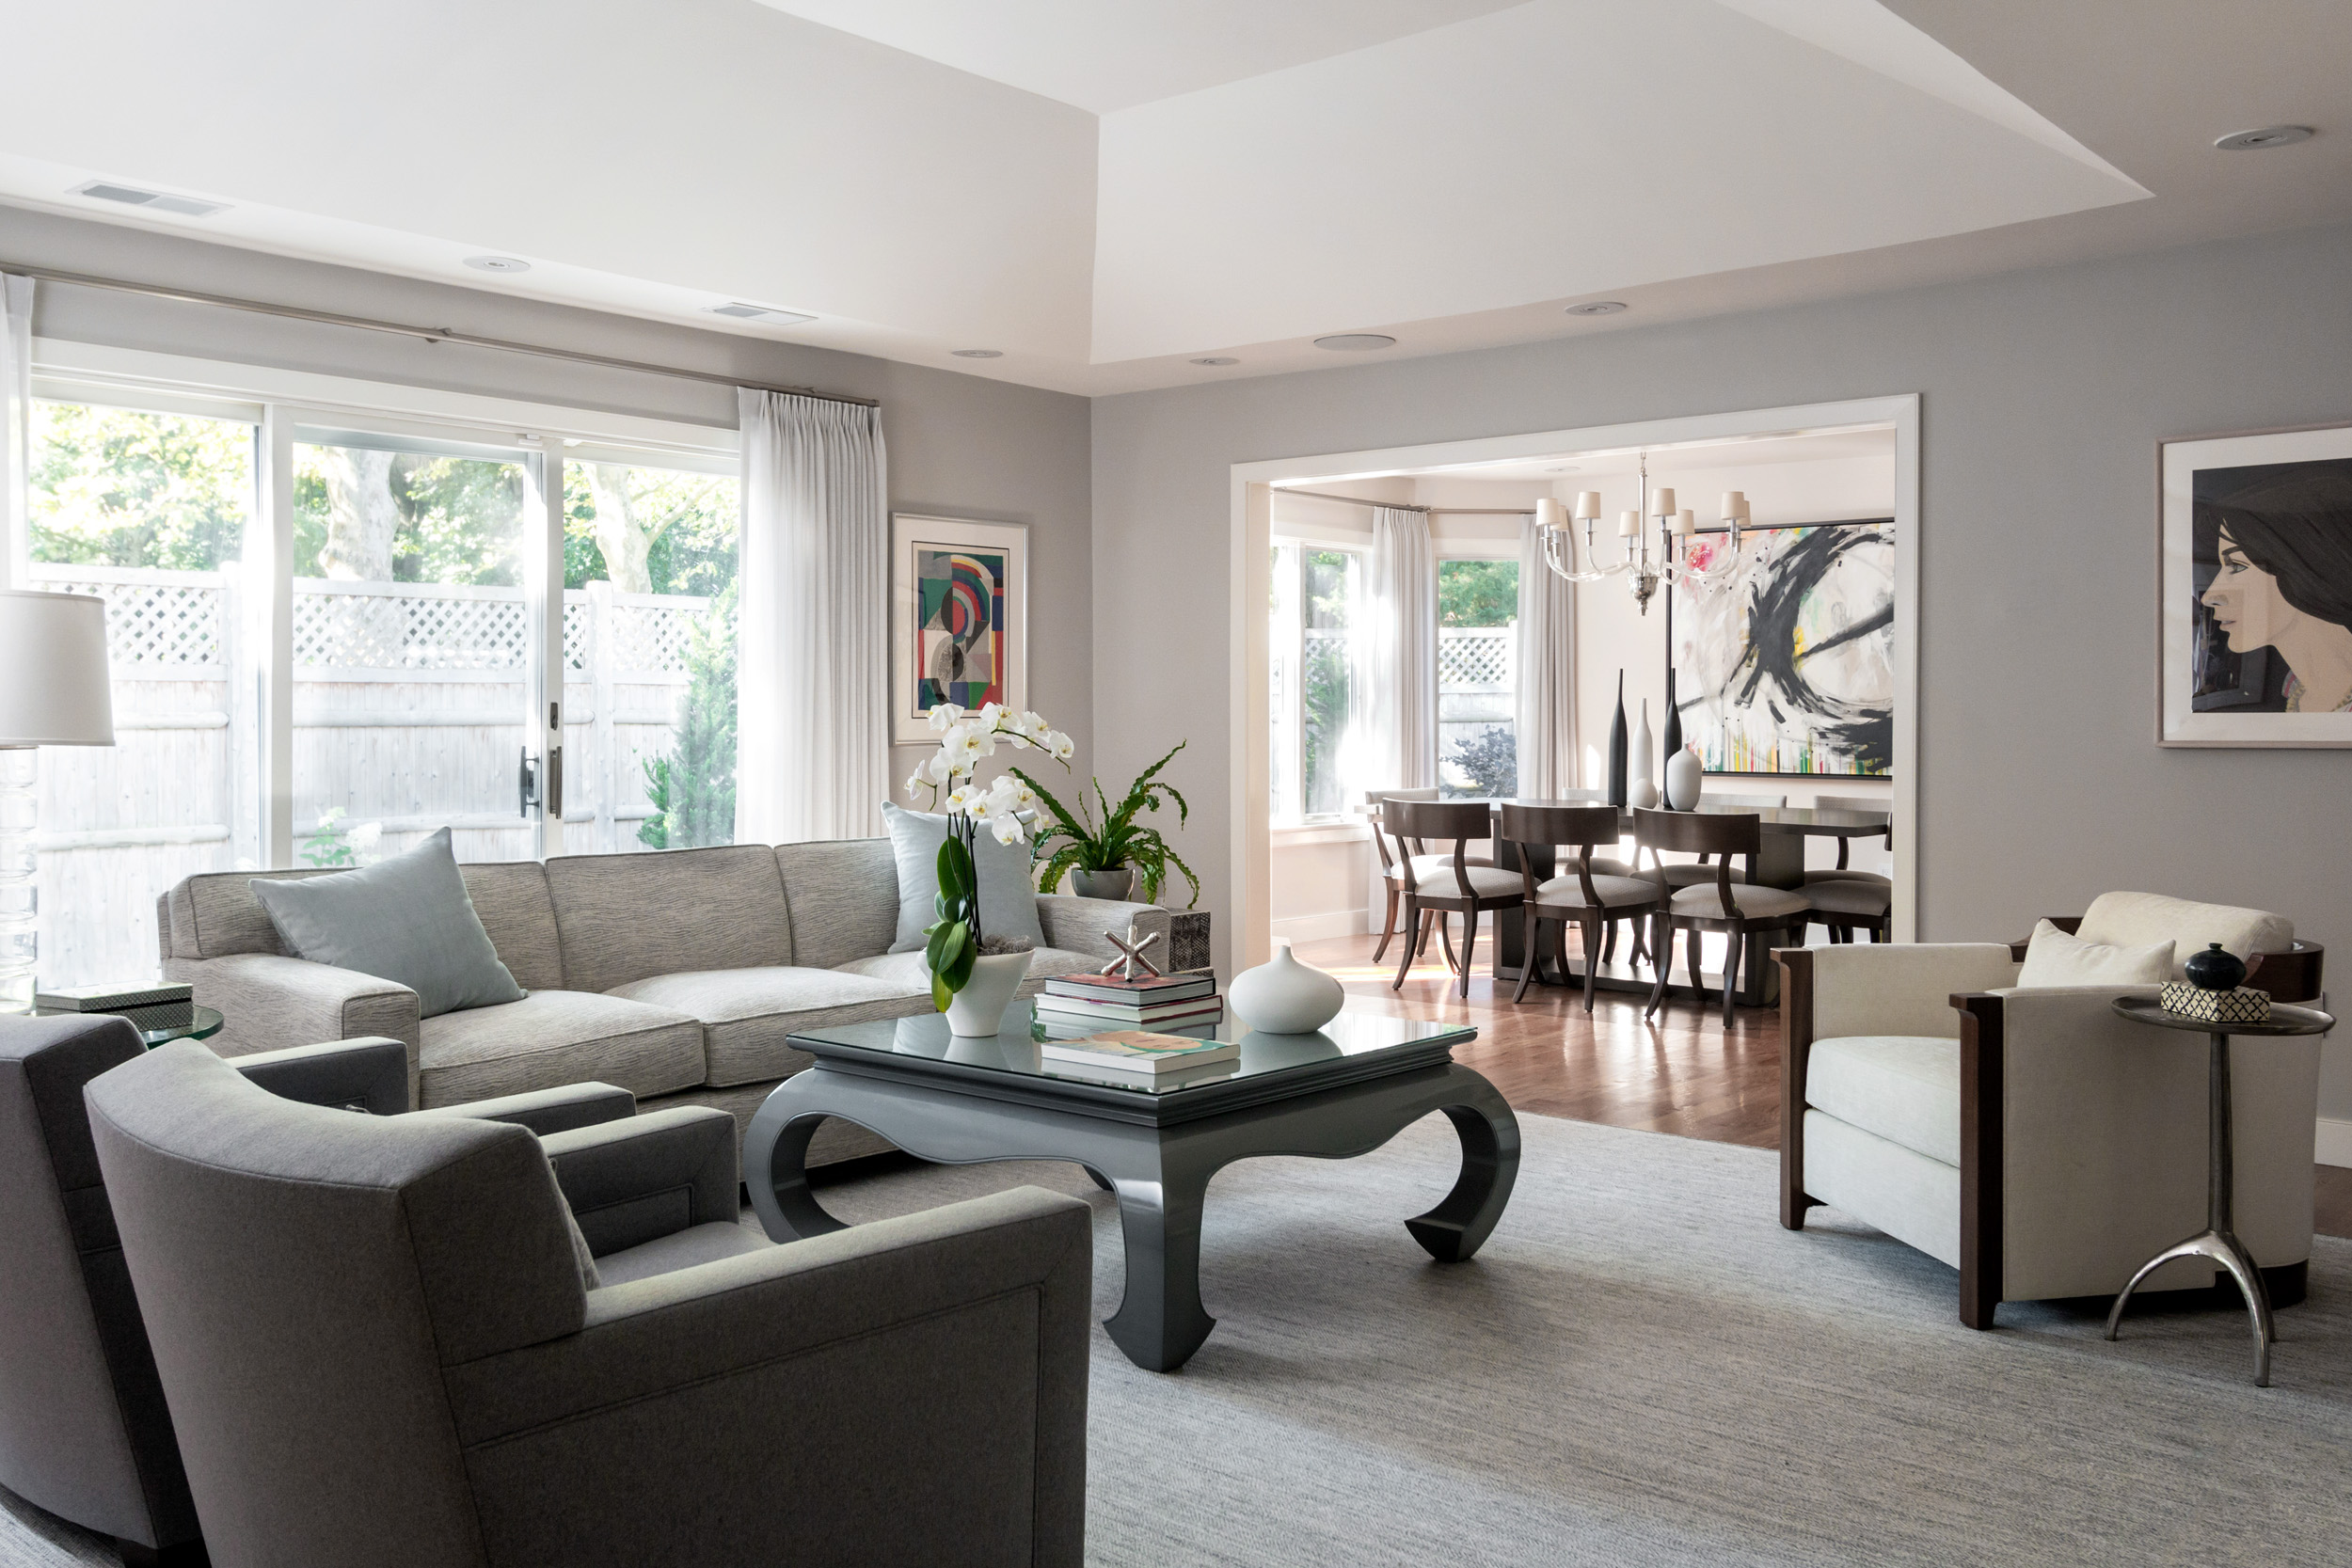 Janine Dowling Design Wins 2 Best of Houzz 2017 Awards